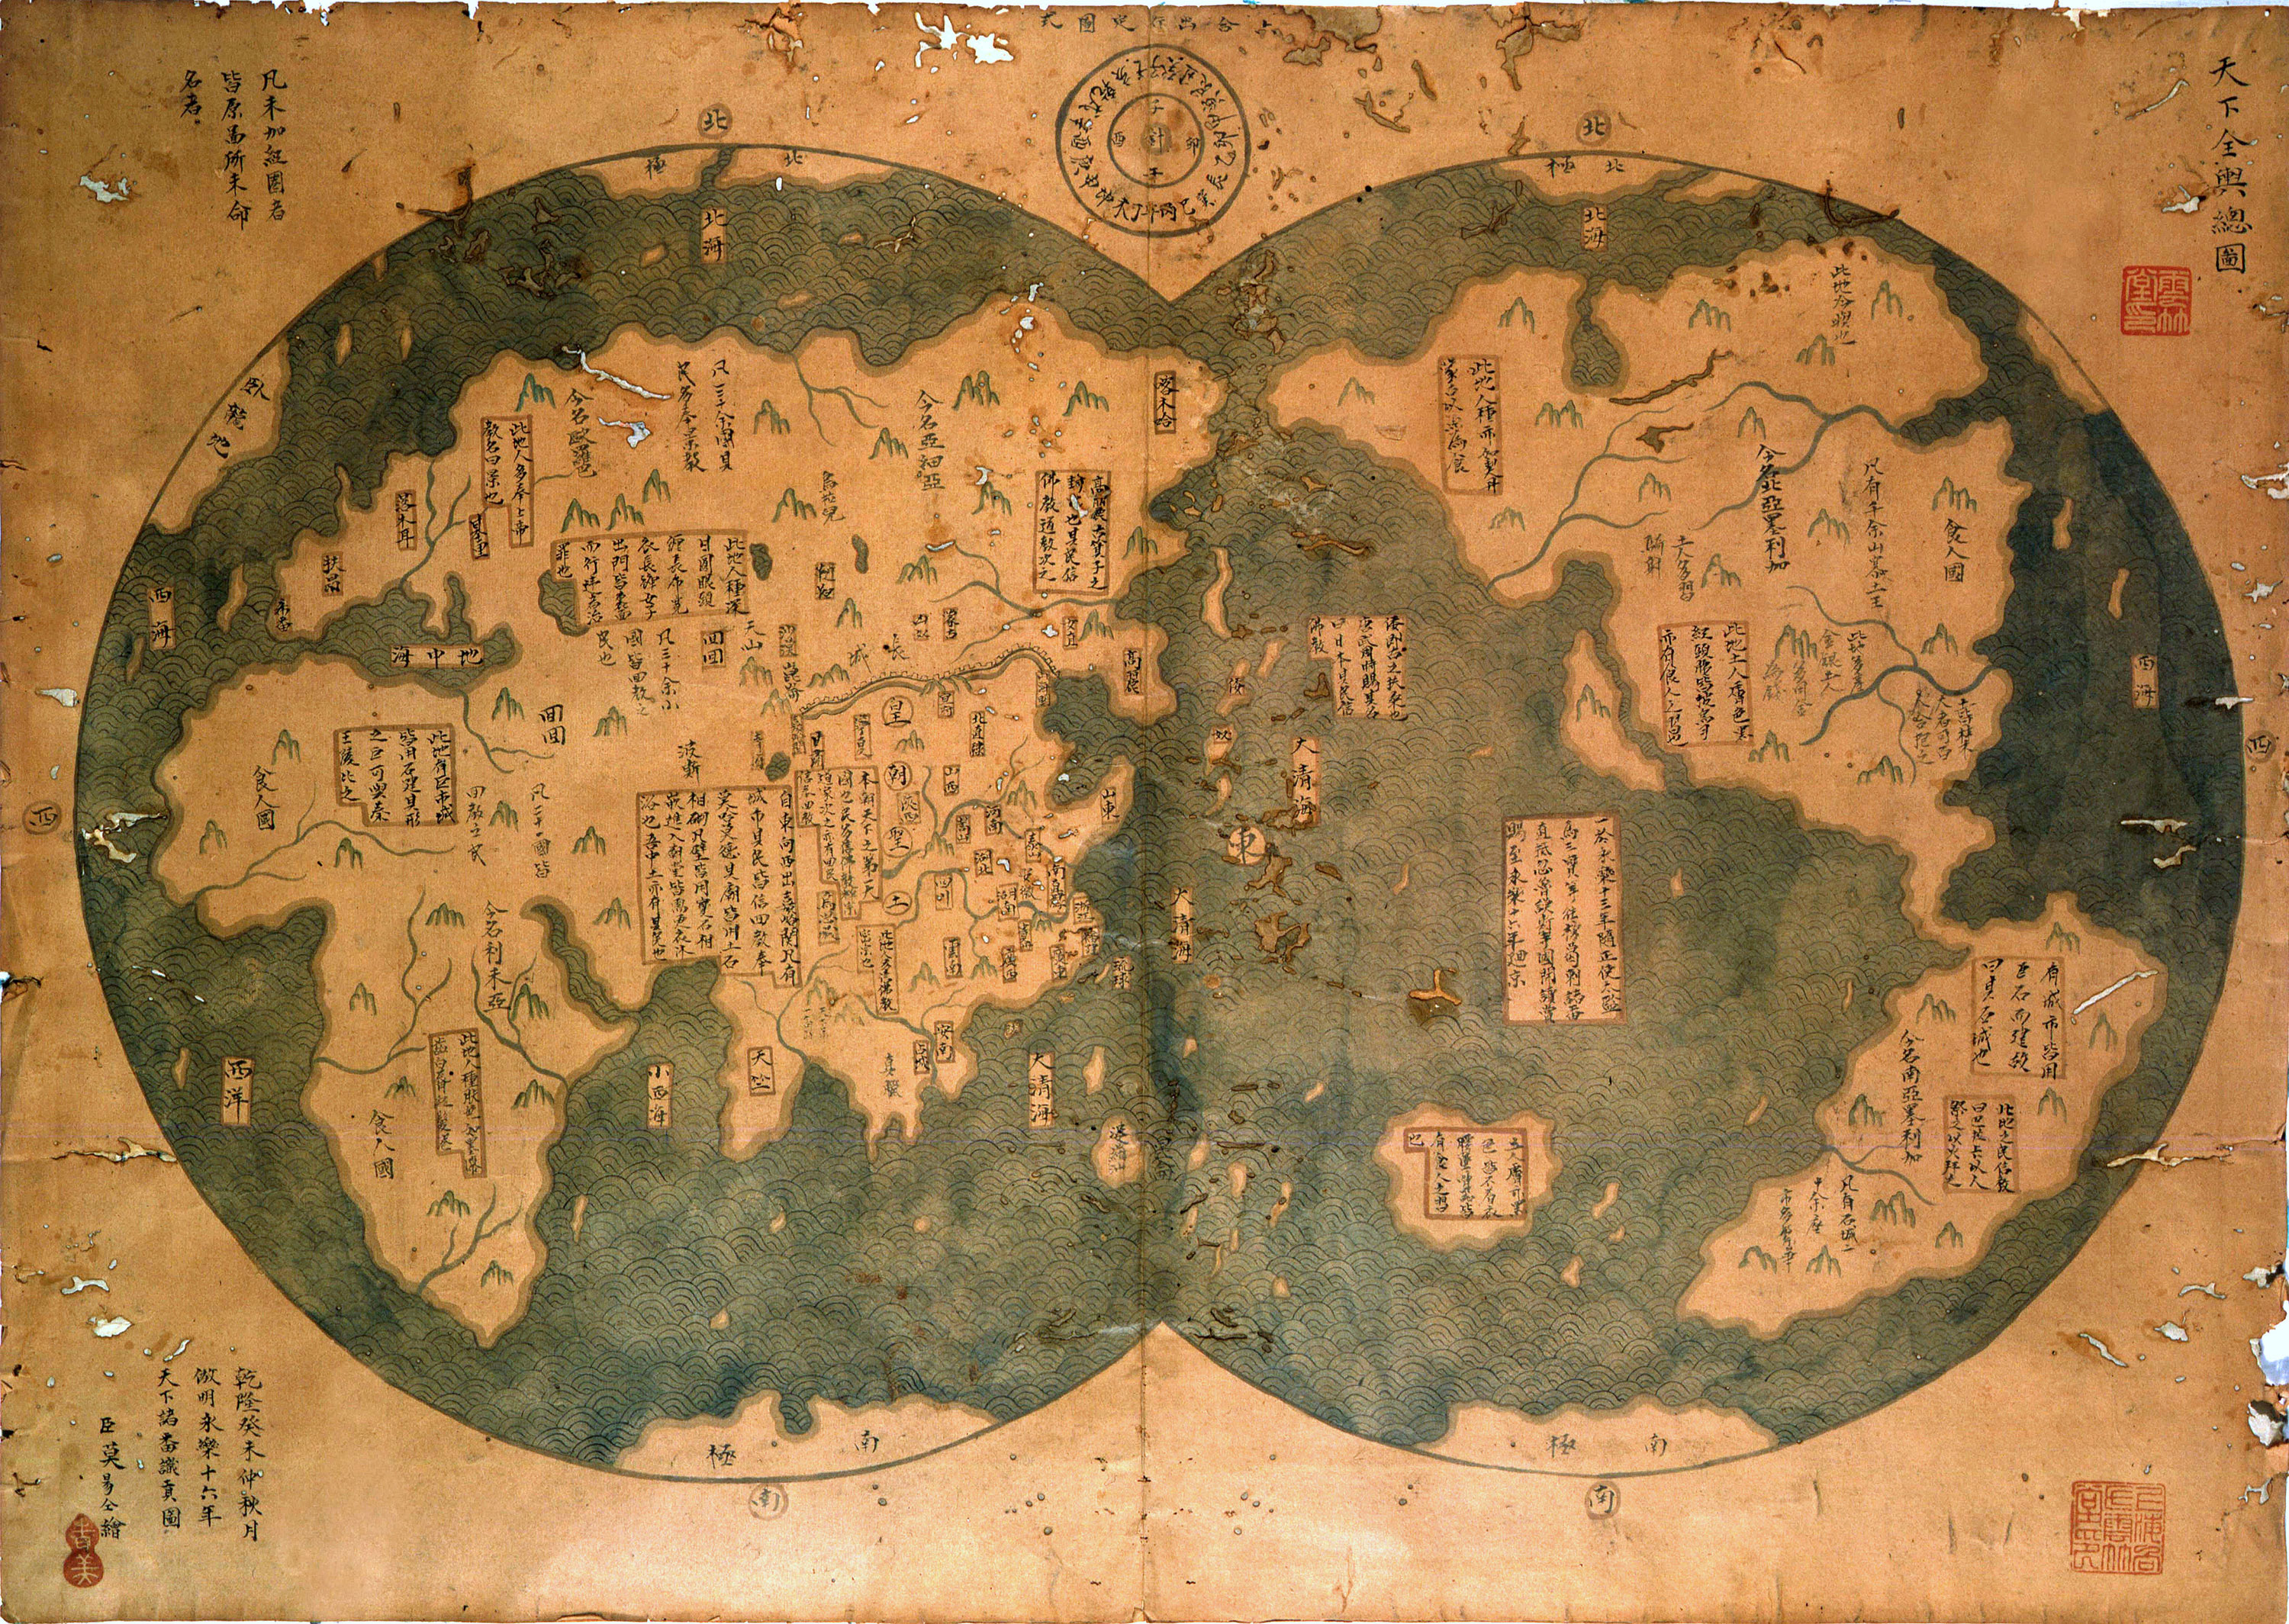 Did china discover america 1843 only europeans represented the globe this way european explorers completed travels like this over the course of hundreds of years gumiabroncs Image collections